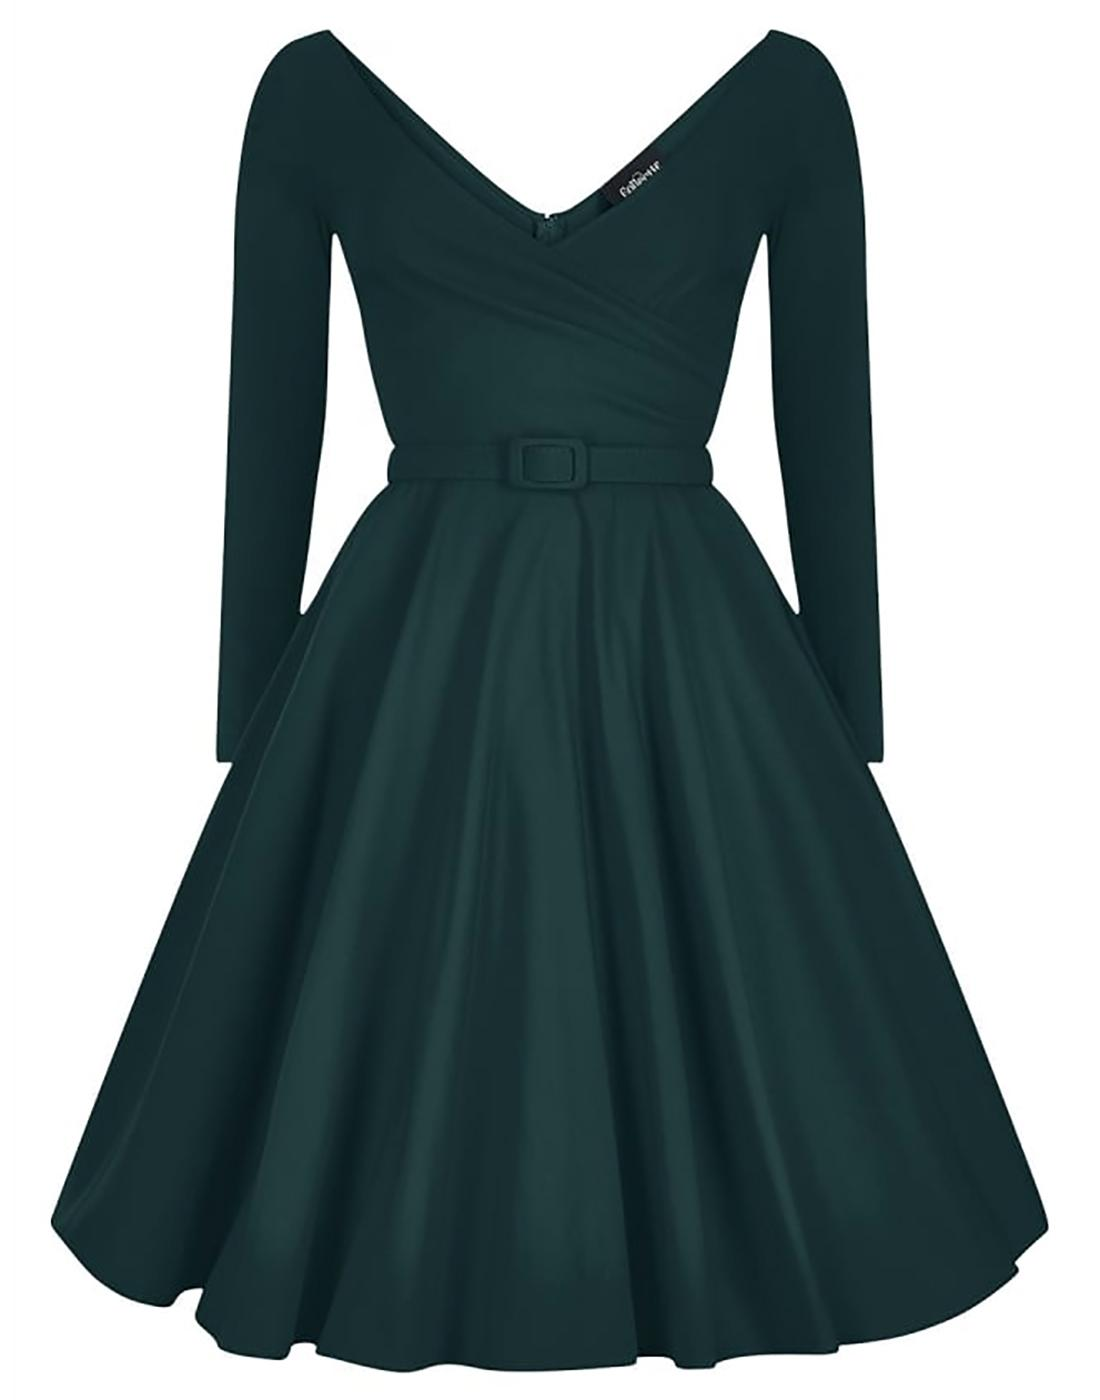 Nicky COLLECTIF Retro Vintage 50s Party Dress Teal